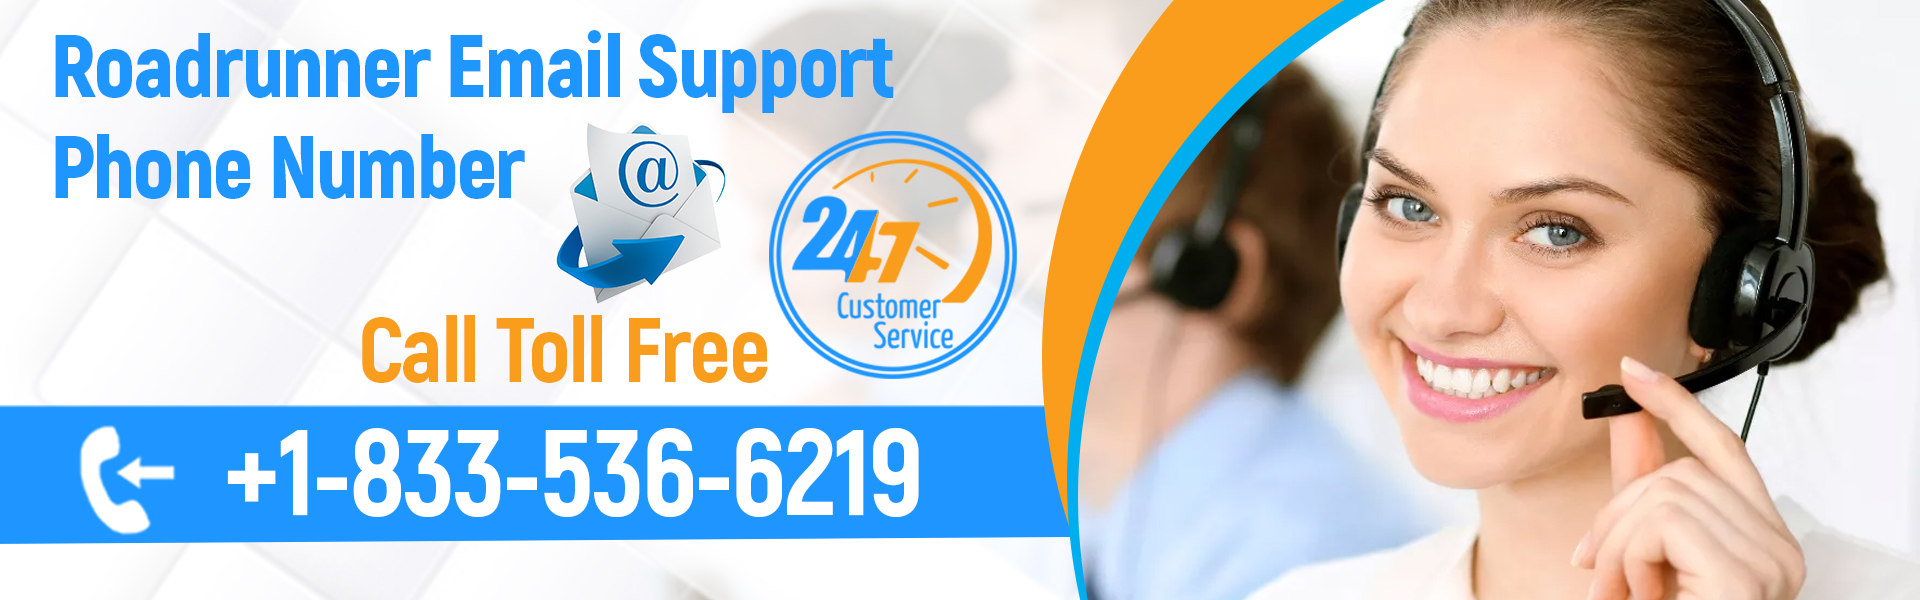 Roadrunner Email Support Phone Number